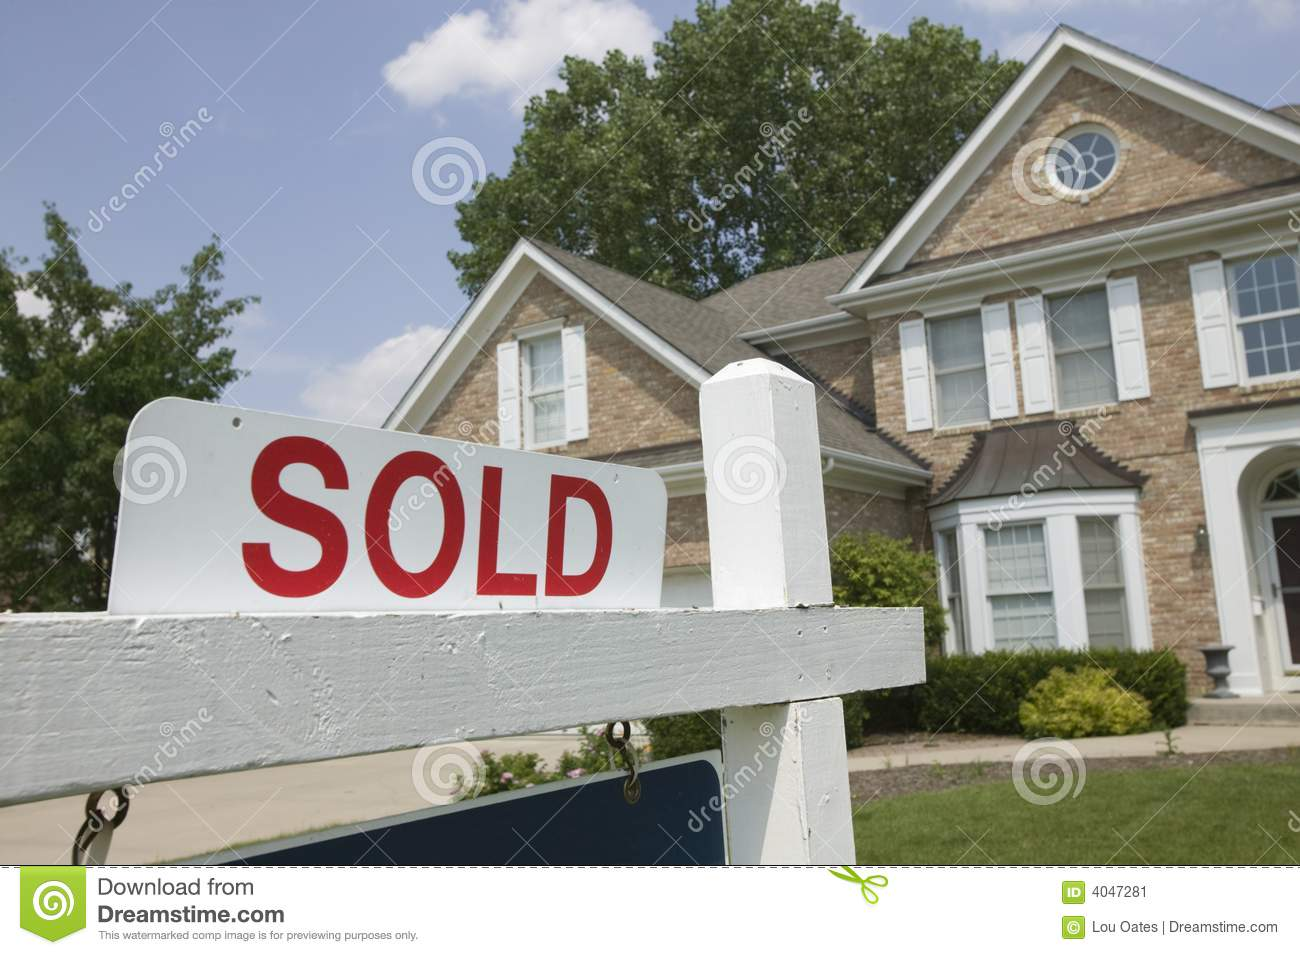 House sold sign stock image. Image of agent, sign, house ...